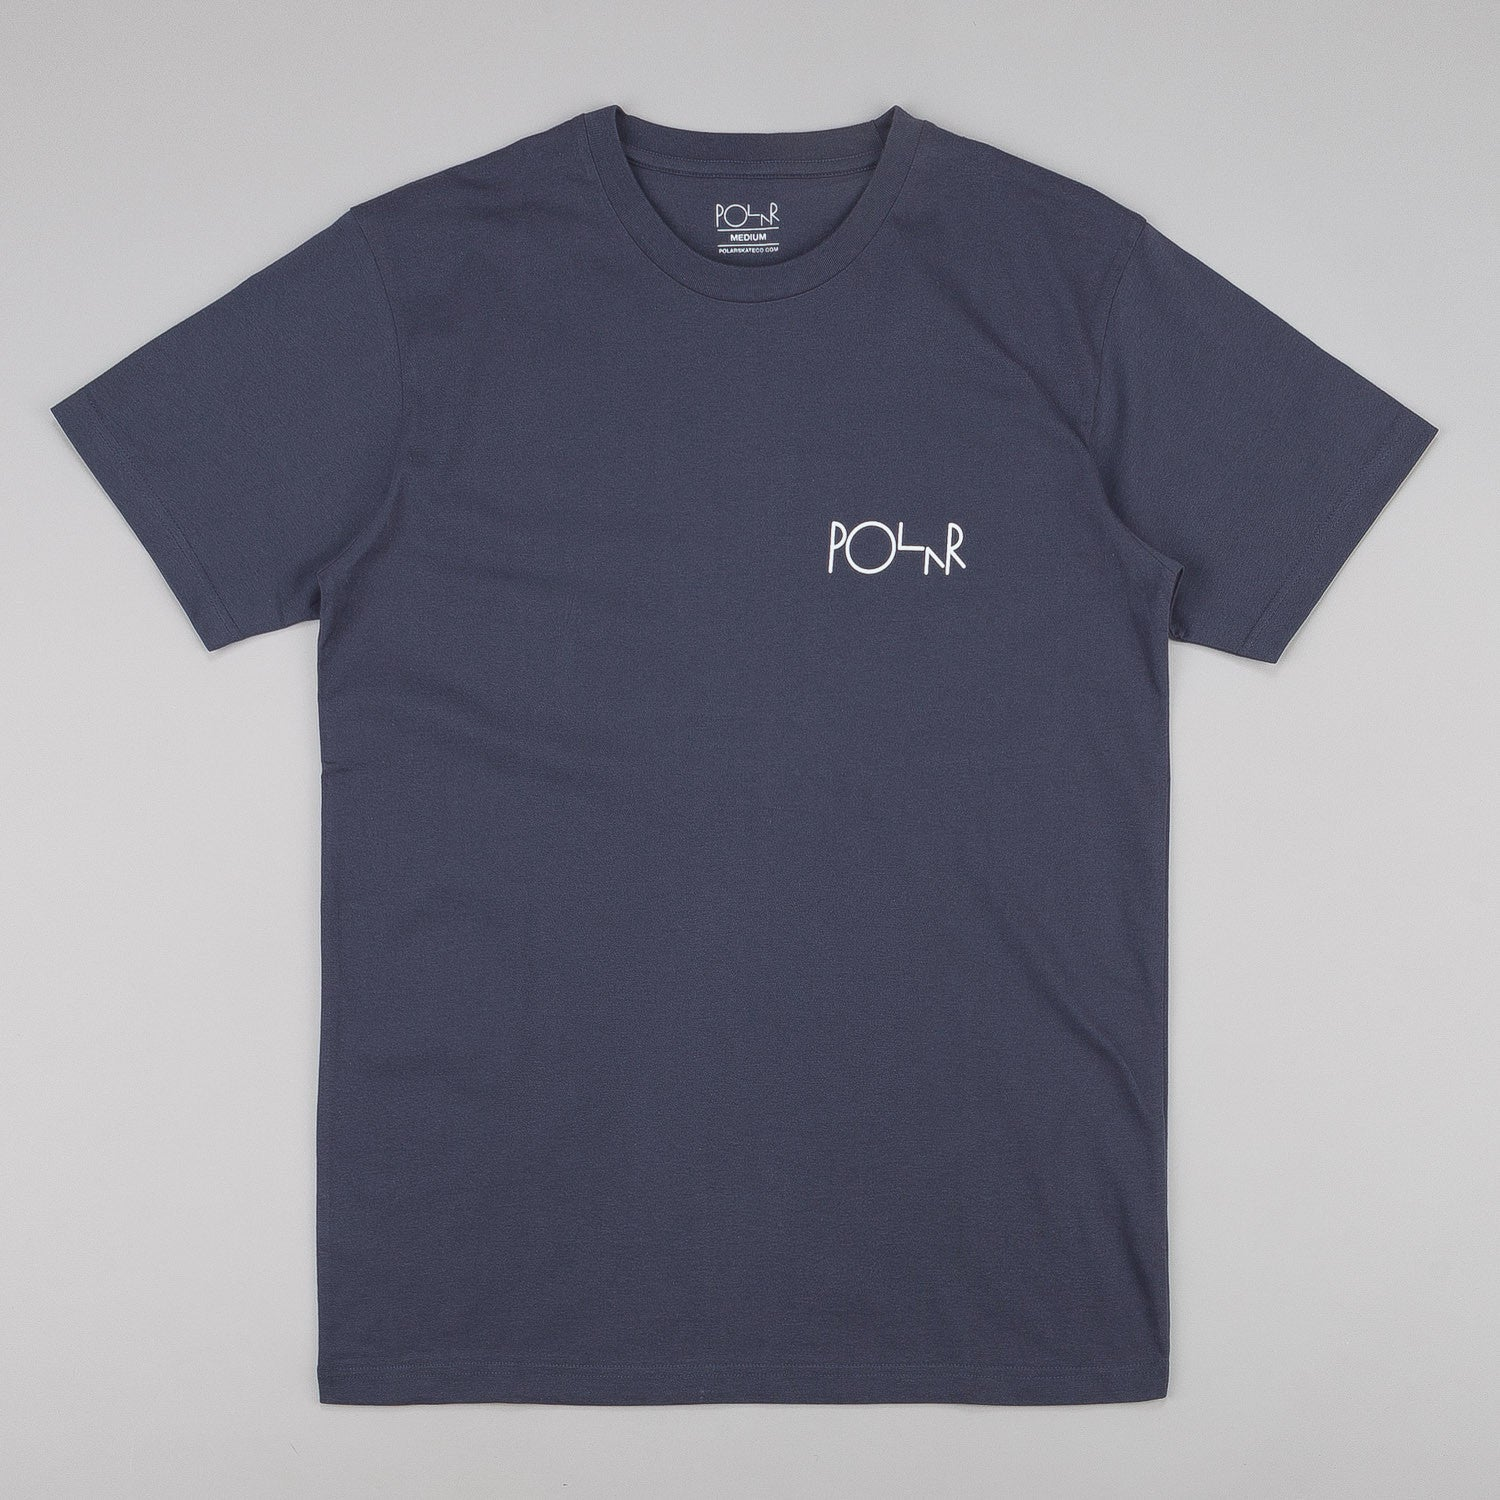 Polar Fill Logo T-Shirt - Charcoal Grey / Aqua / White